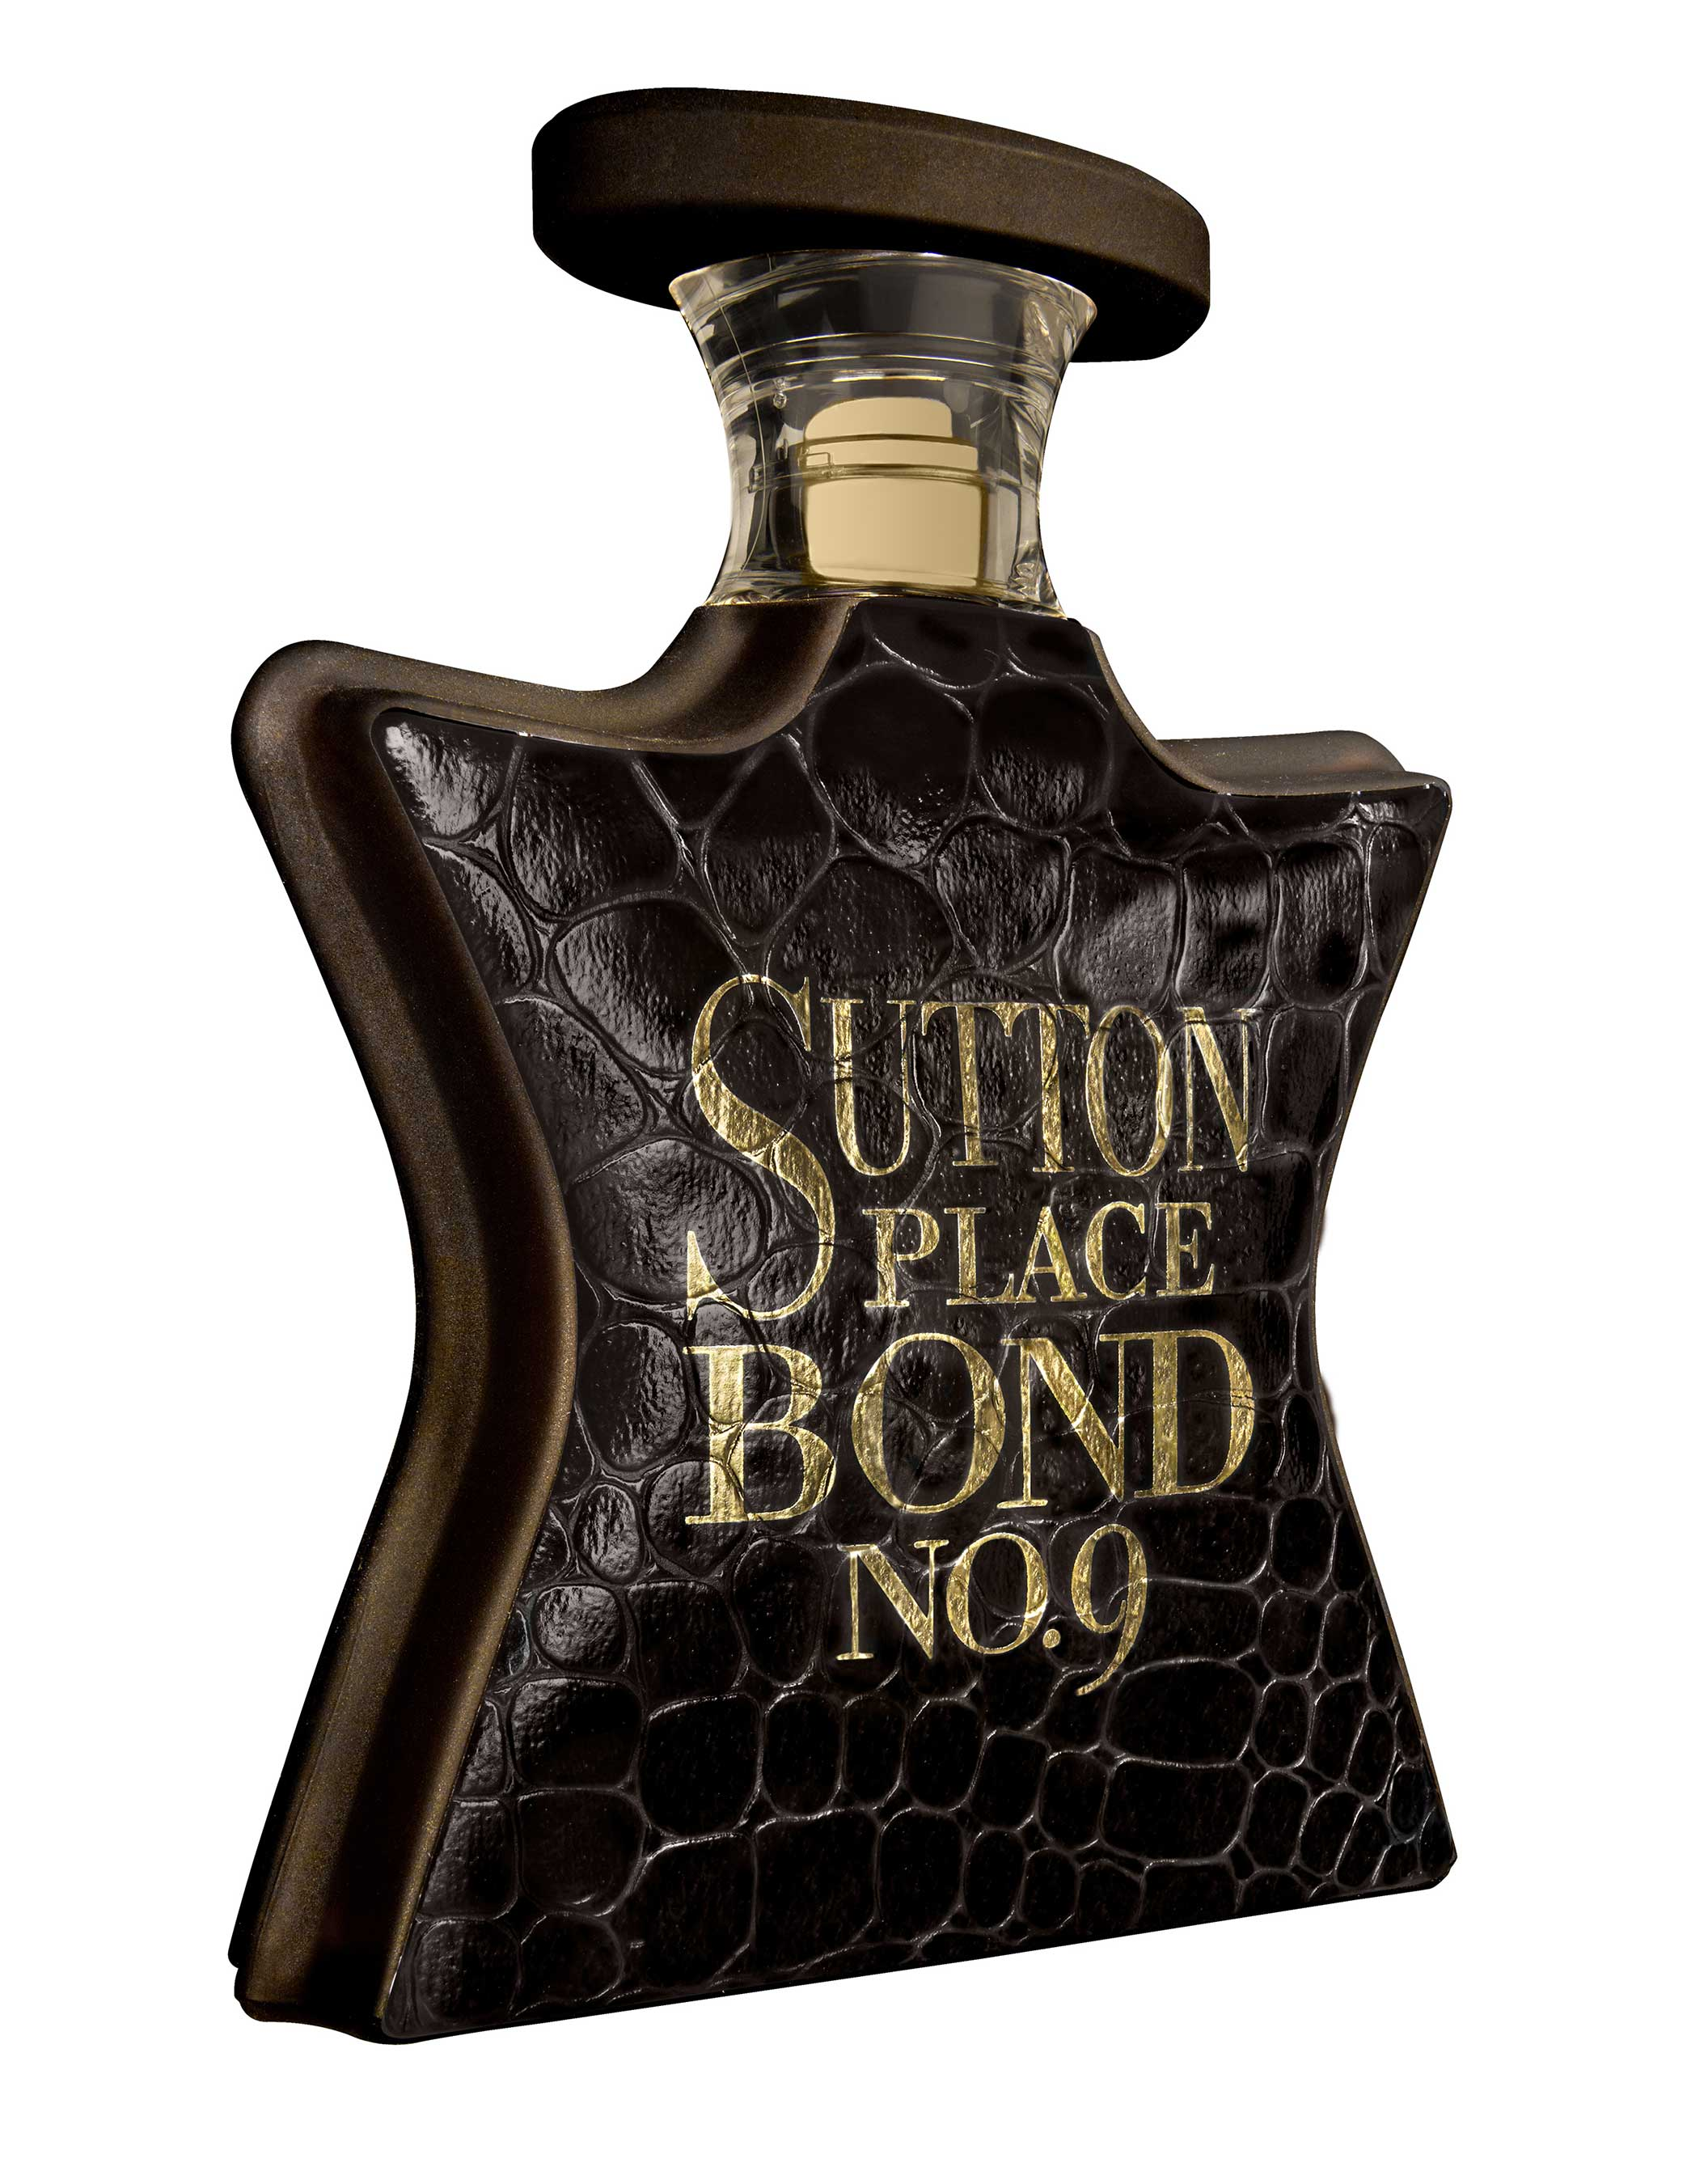 The Sutton Place bottle is the first in the Bond No. 9 repertory to be colored brown — a deep, rich cigar-toned maduro brown, with a touchable texture reminiscent of reptile skin.